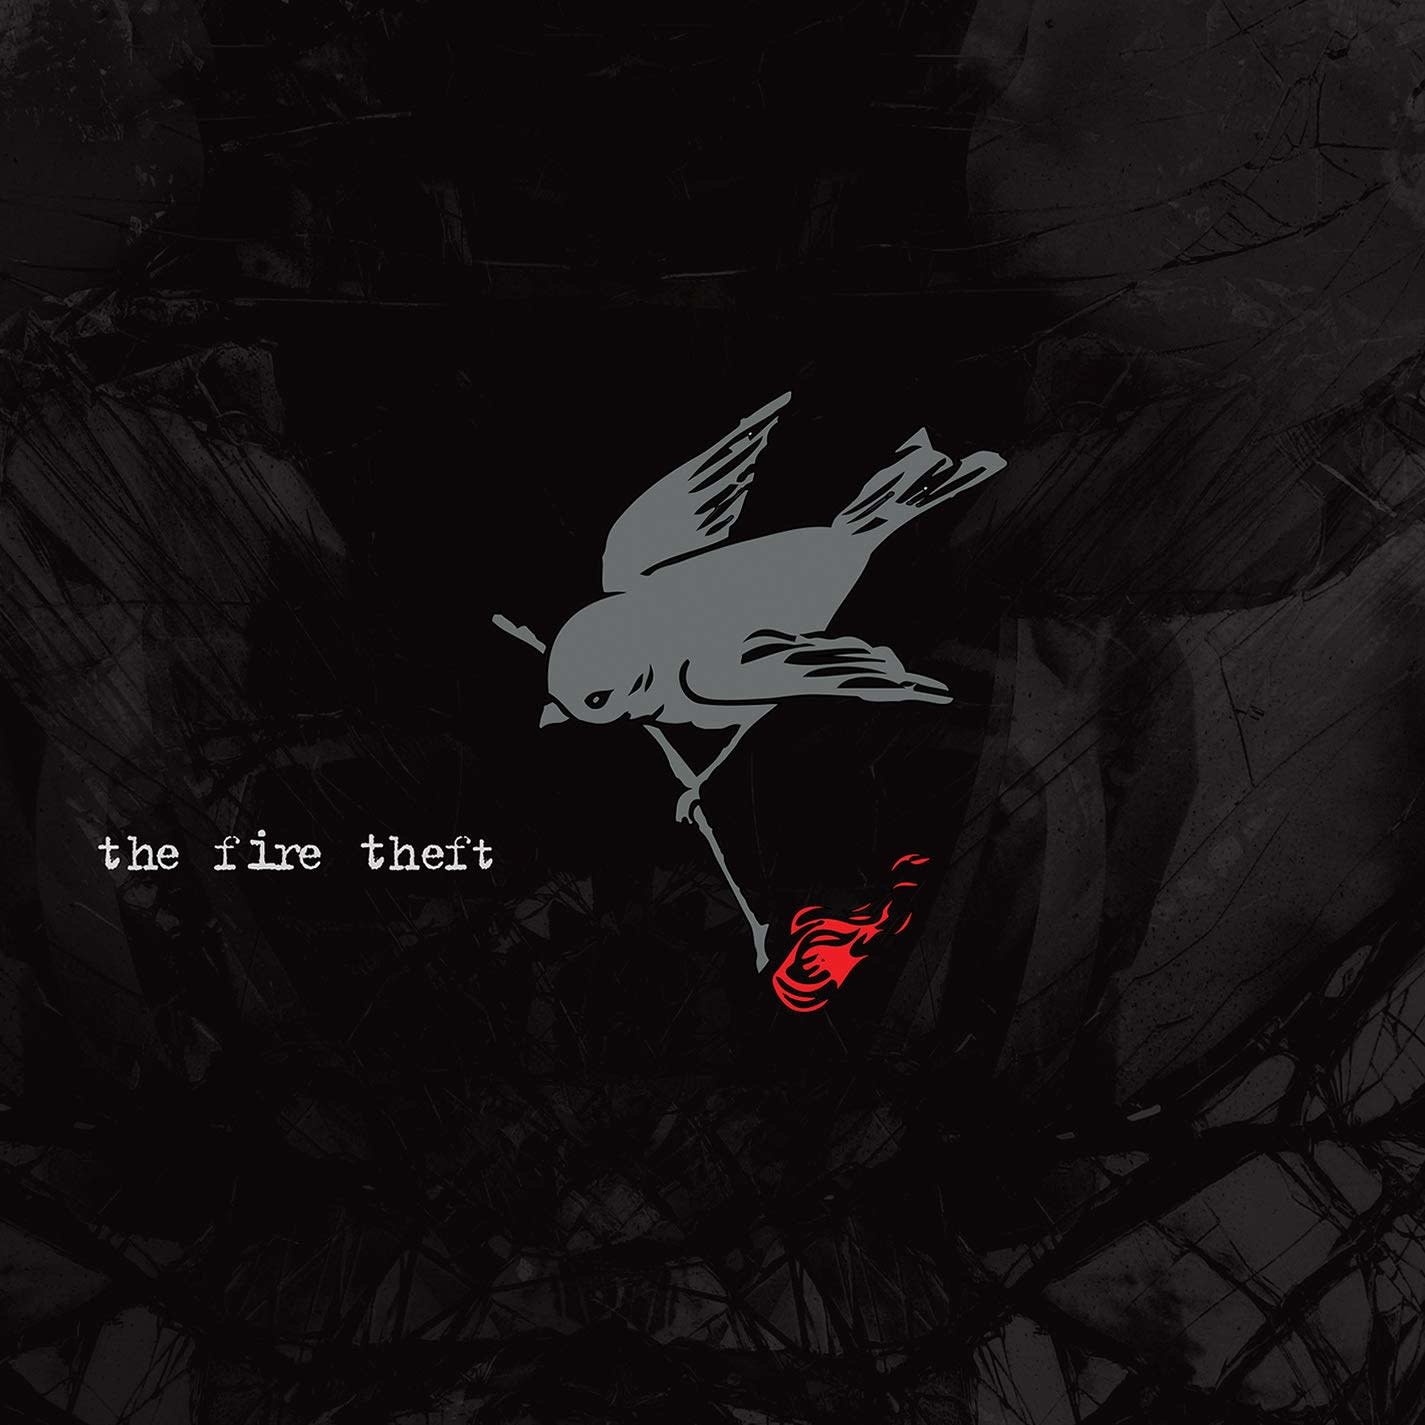 Fire Theft ‎– The Fire Theft